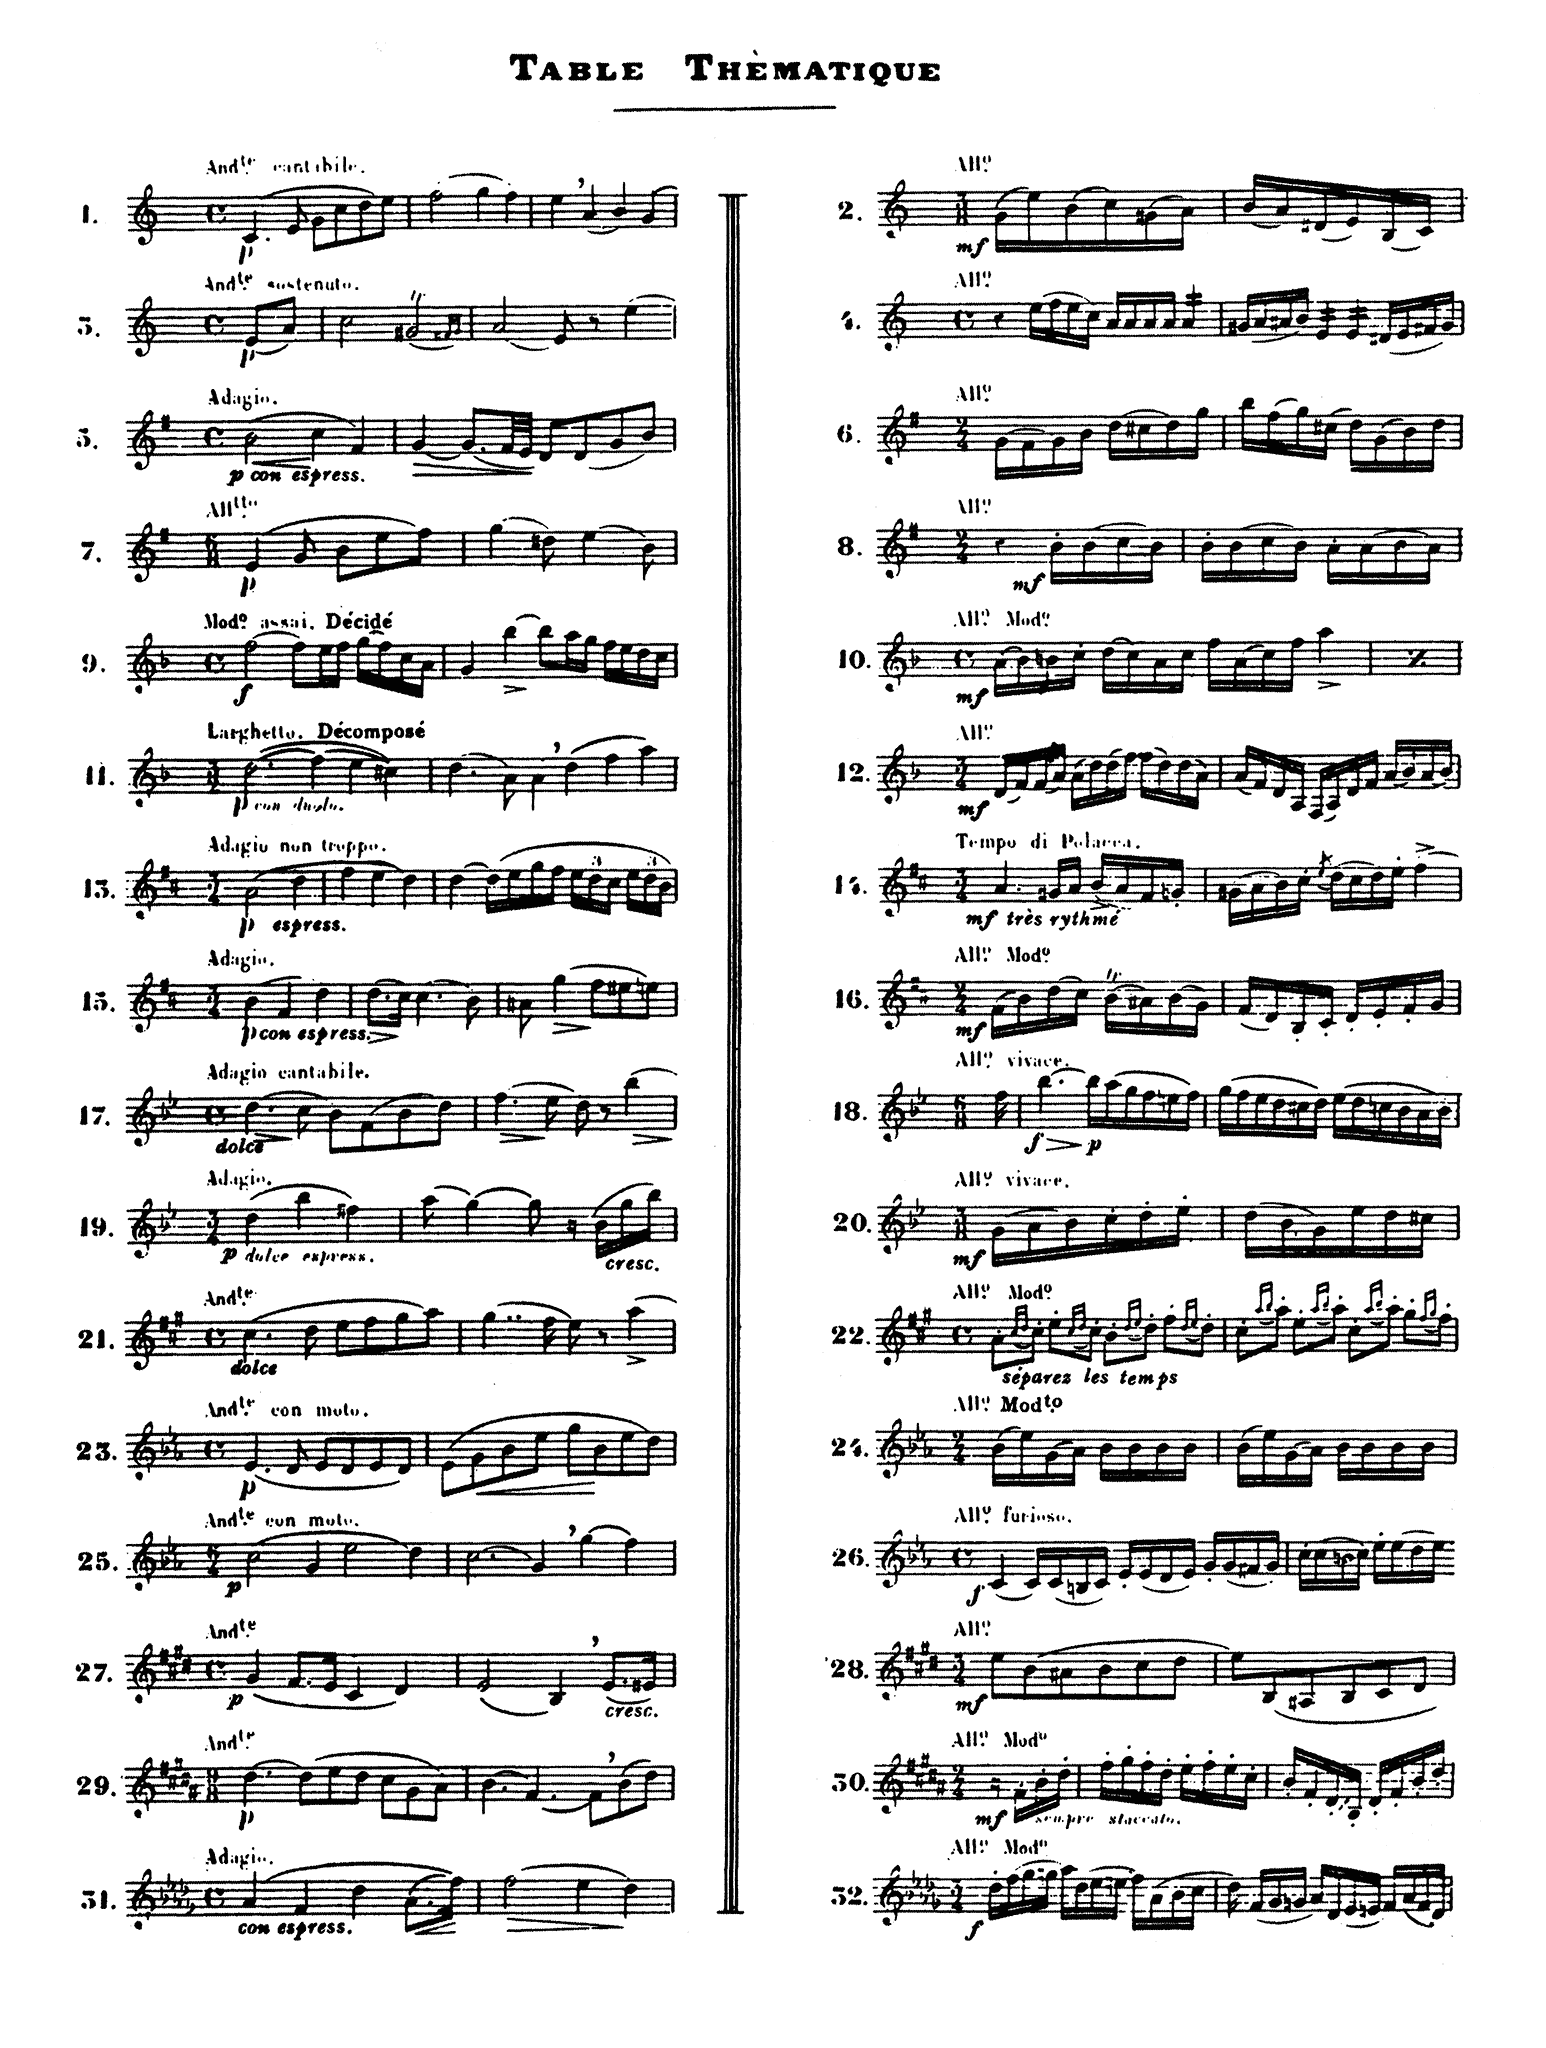 Rose 32 Clarinet Études Thematic Index